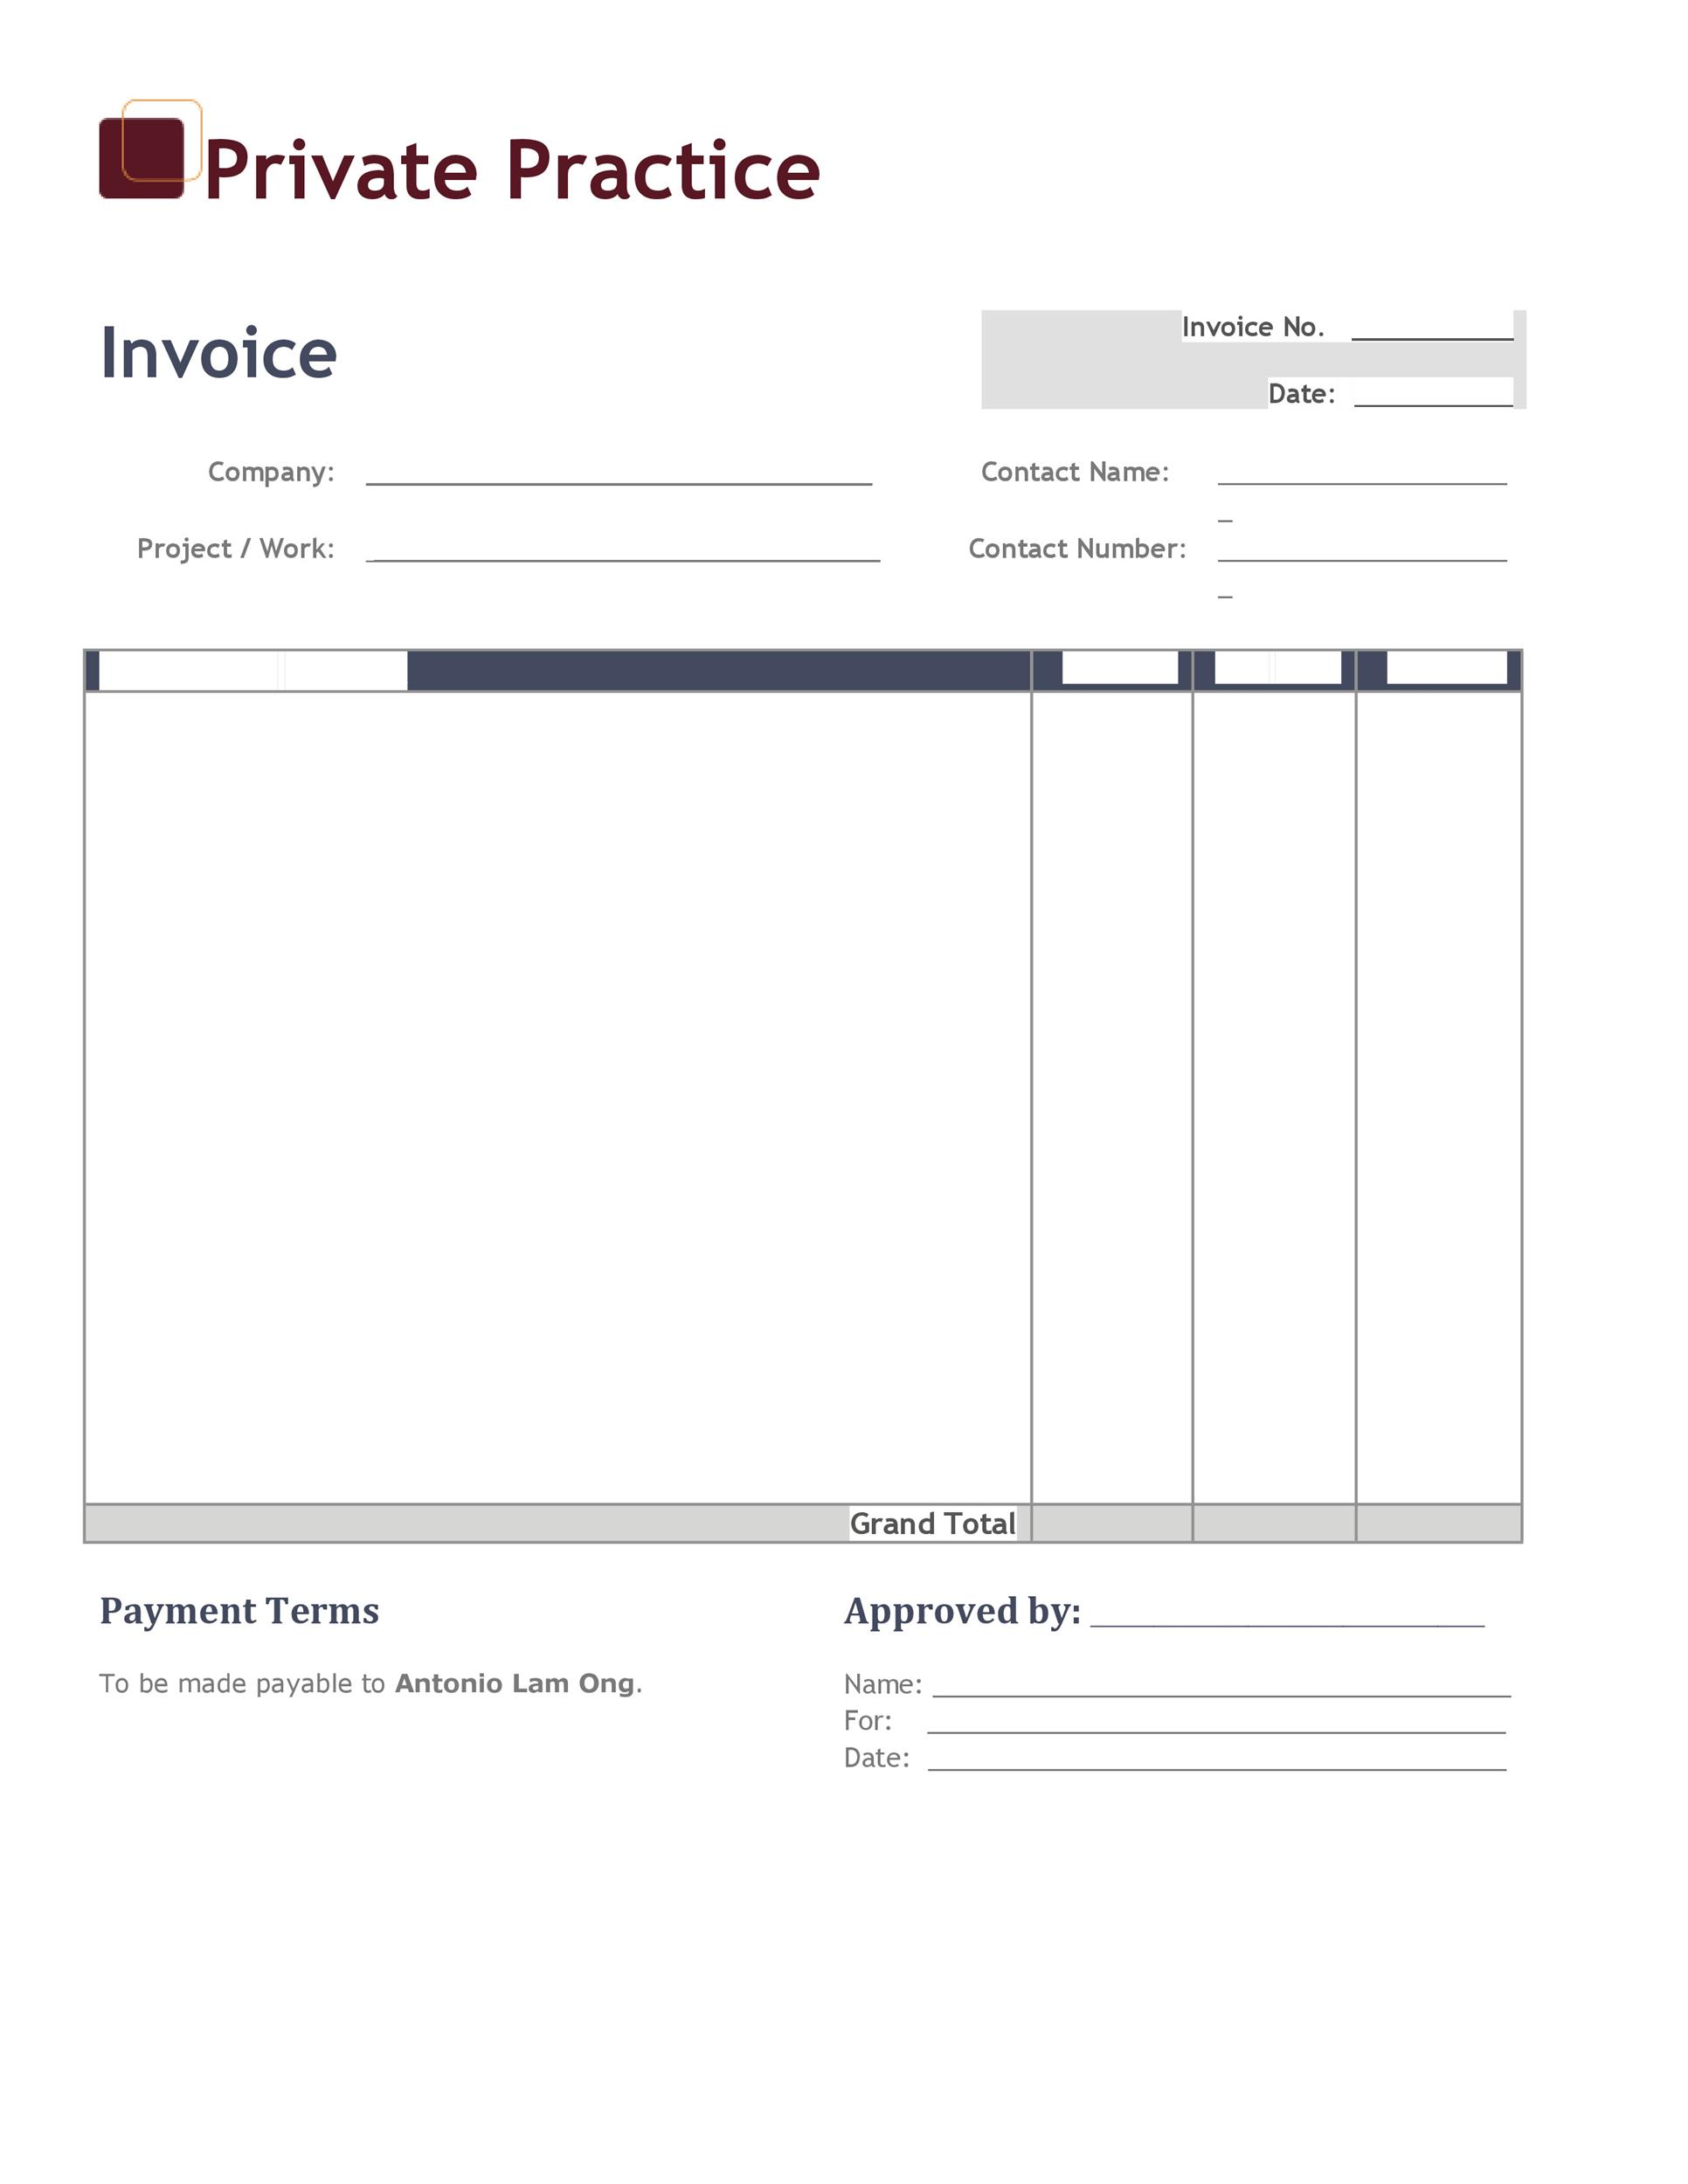 Invoice Templates Blank Commercial PDF Word Excel - Invoice document template